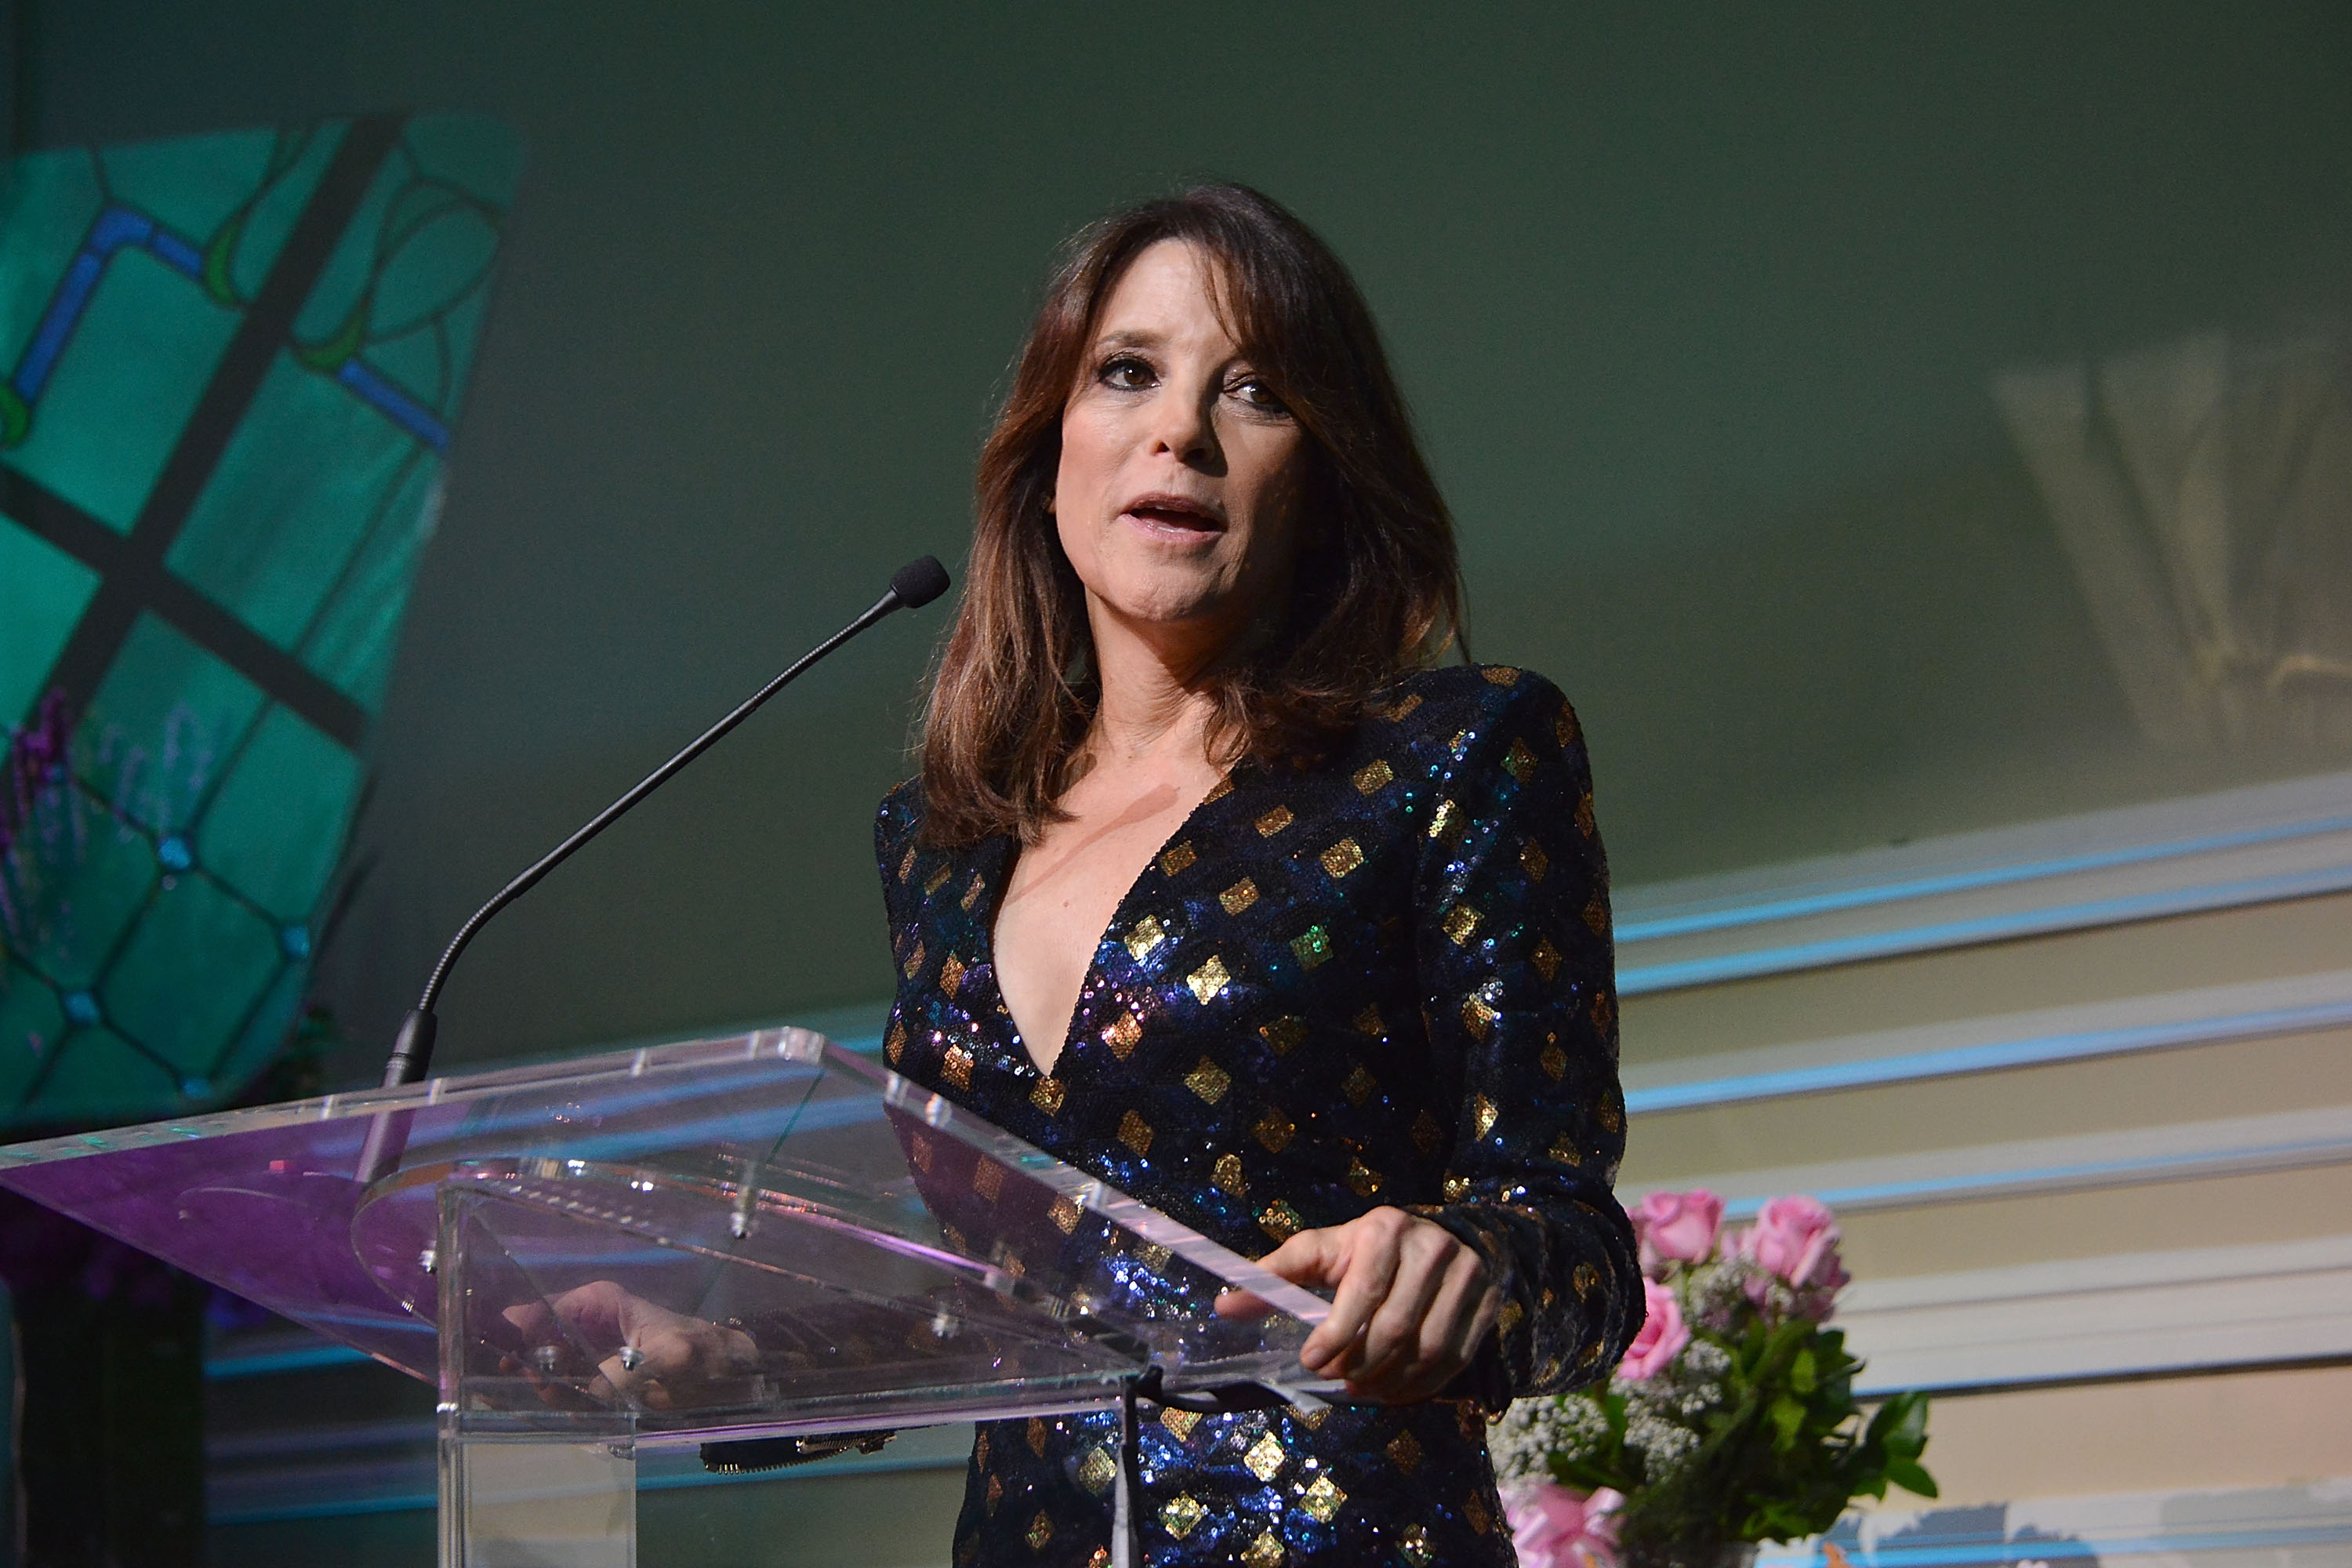 Marianne Williamson attends the Project Angel Food's Angel Awards 2015, Honoring Marianne Williamson & Founding Team as well as Entertainment Industry Foundation at Taglyan Cultural Complex on August 22, 2015 in Hollywood, California.